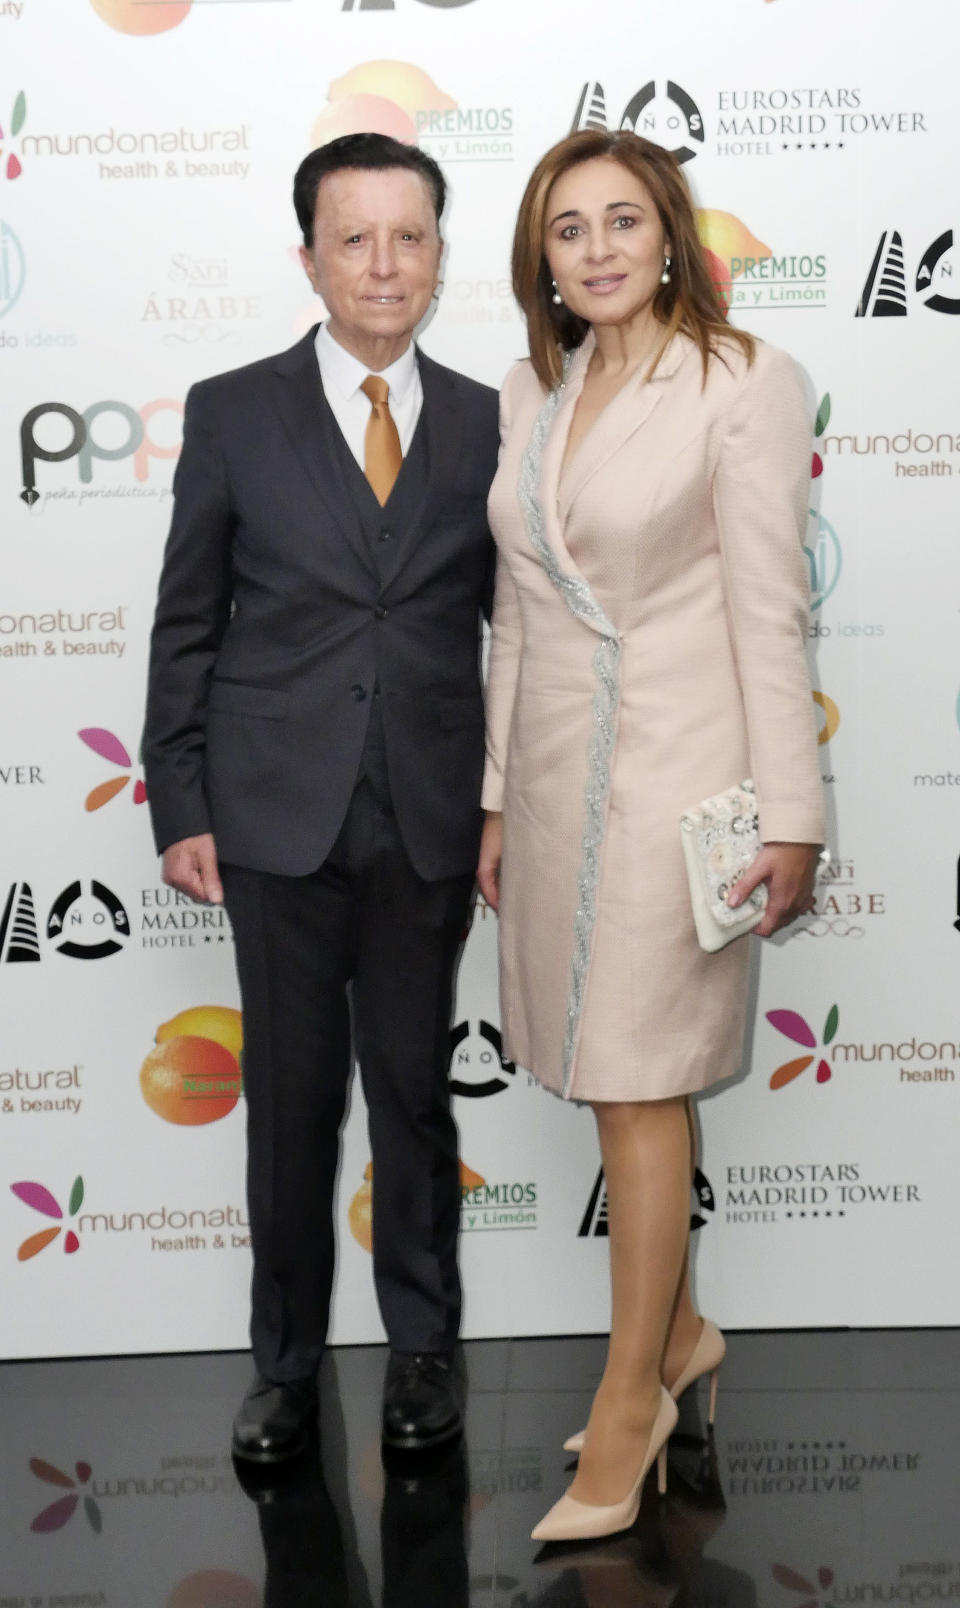 MADRID, SPAIN - APRIL 10: José Ortega Cano and Ana María Aldón attend 'Naranja Y Limon' Awards 2019 at Eurostars Tower Hotel on April 10, 2019 in Madrid, Spain. (Photo by Europa Press Entertainment/Europa Press via Getty Images)